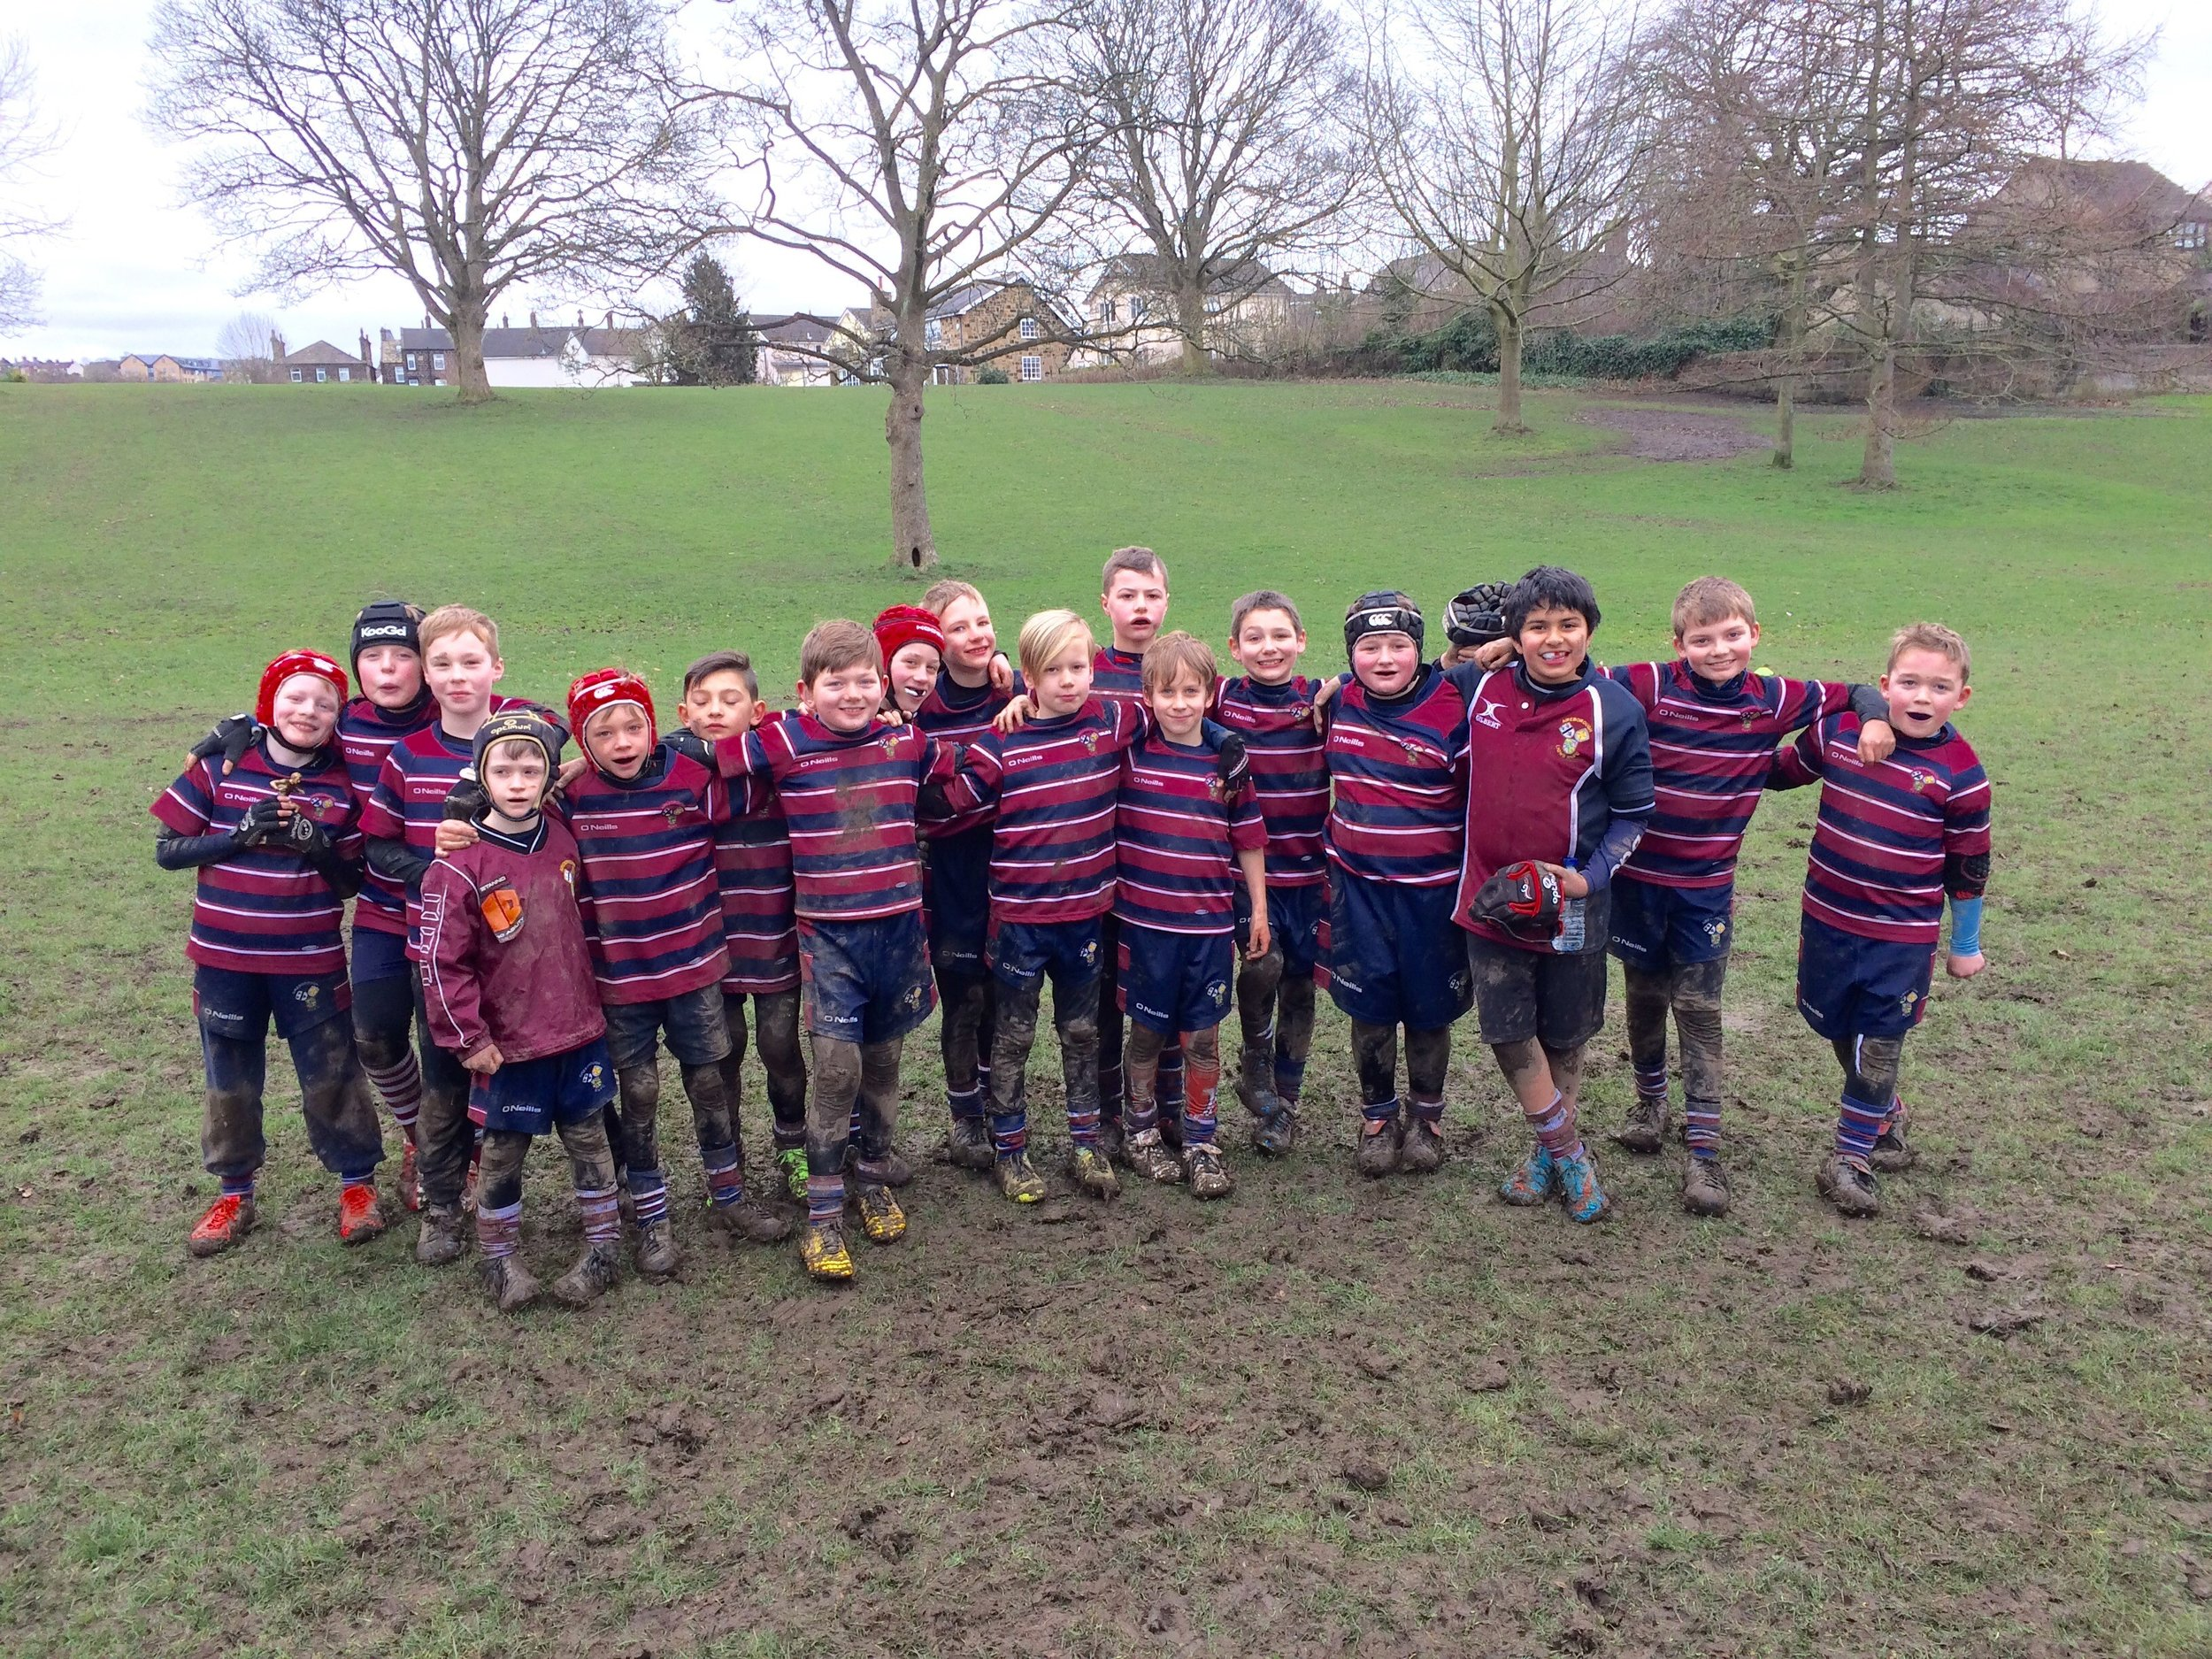 Aireborough Under 9s at Nunroyd Park after last weekend's game against Keighley